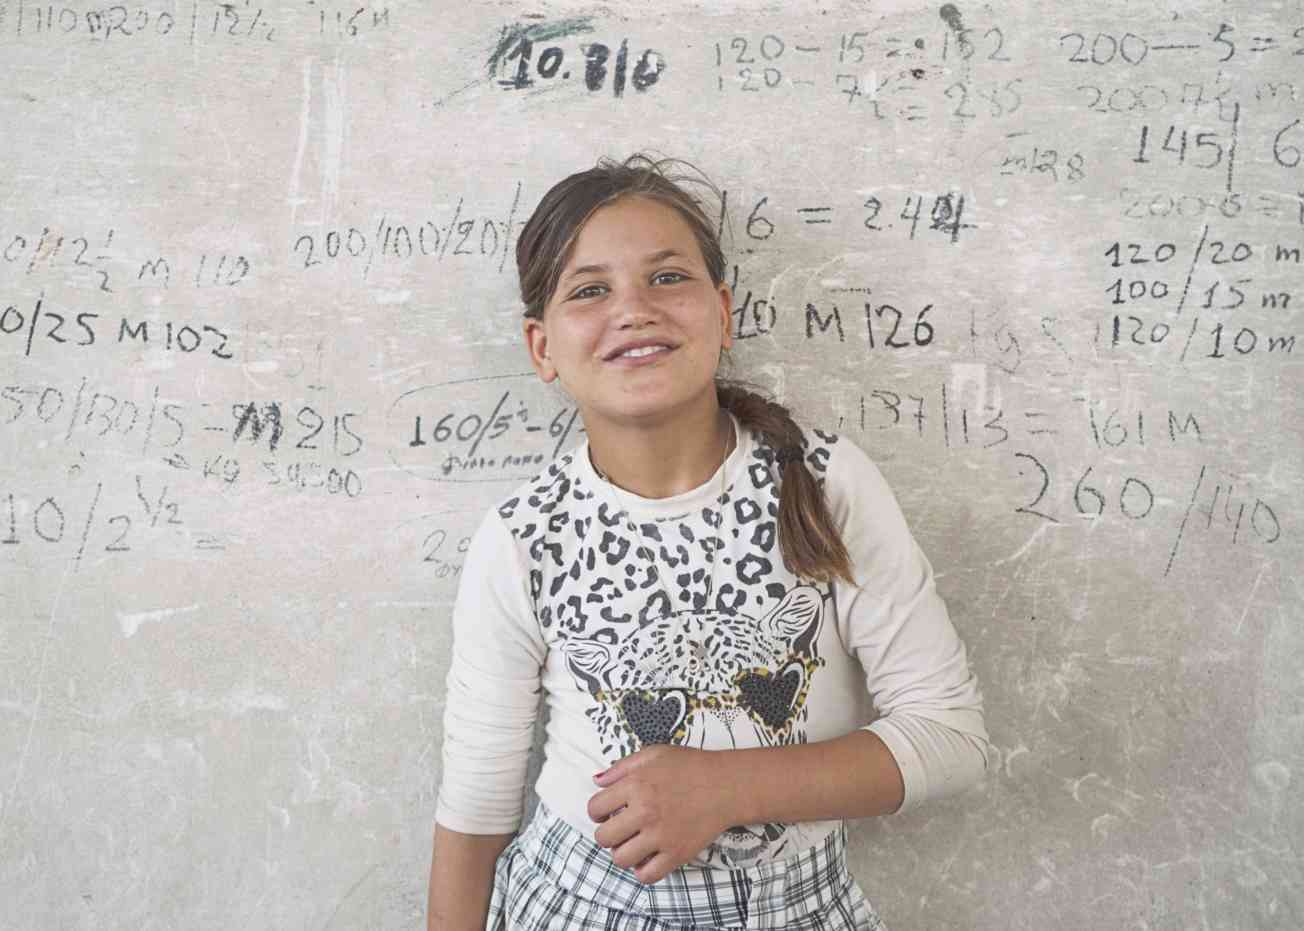 I am more than a number